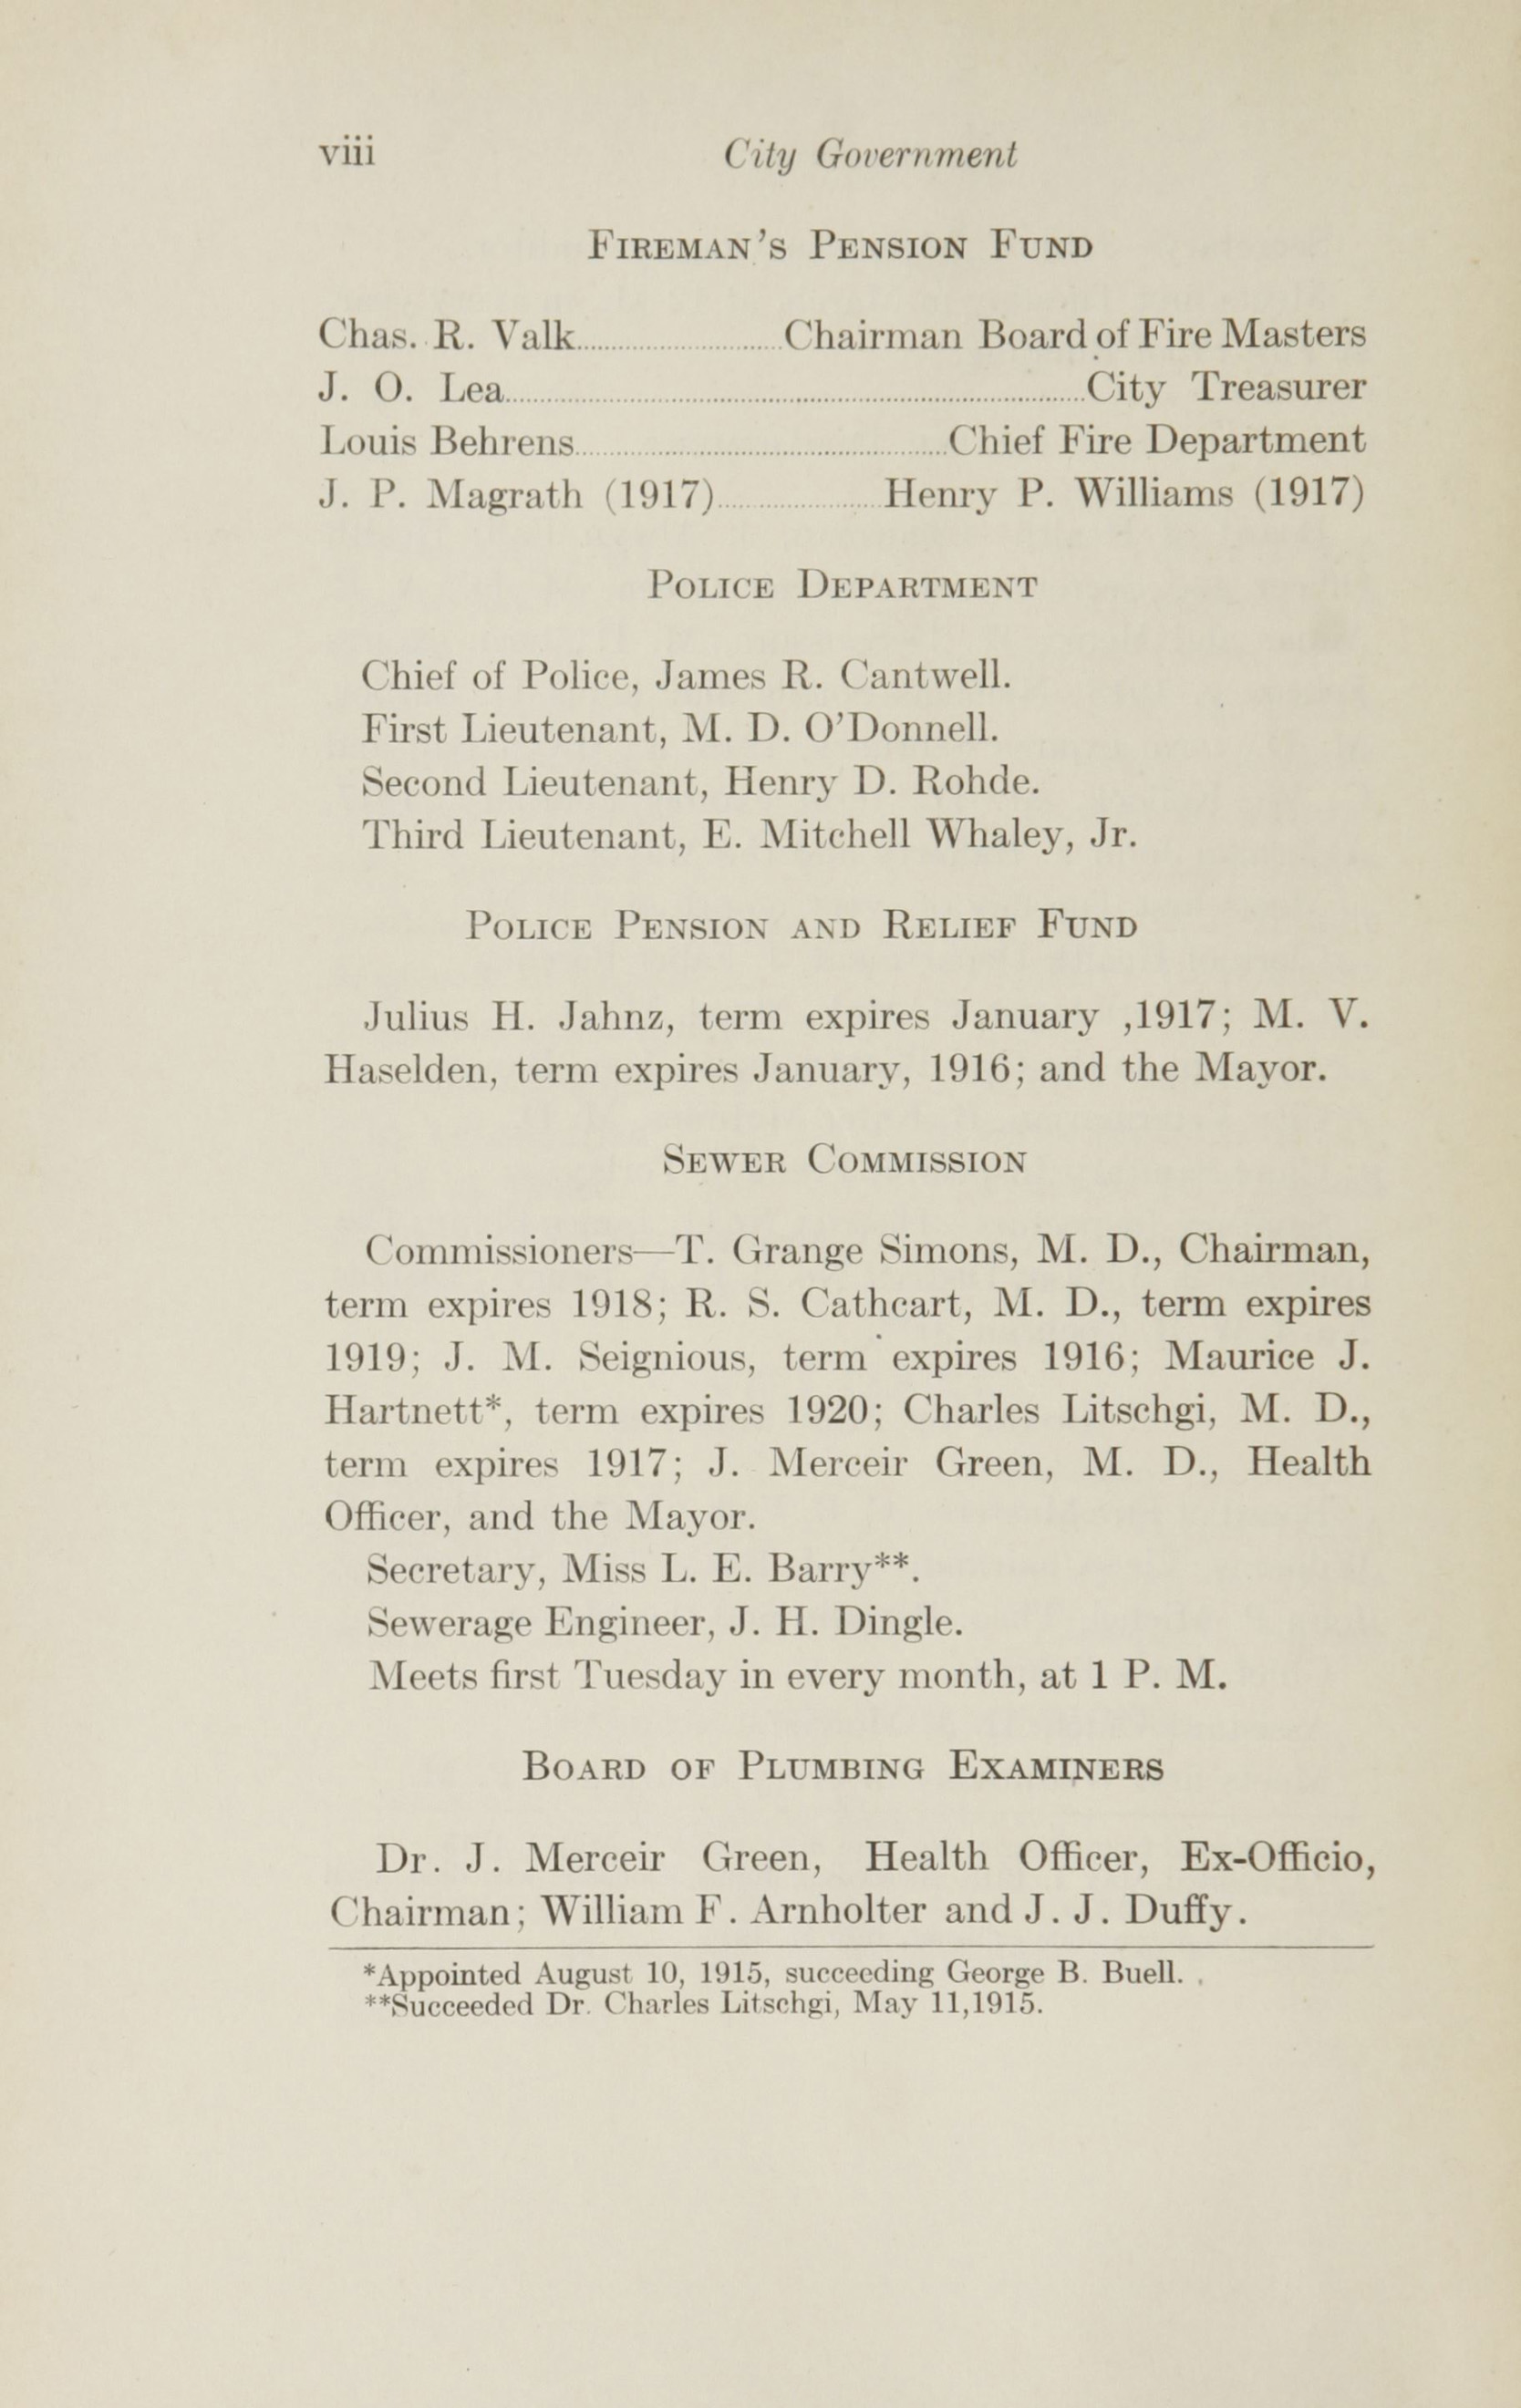 Charleston Yearbook, 1915, page viii